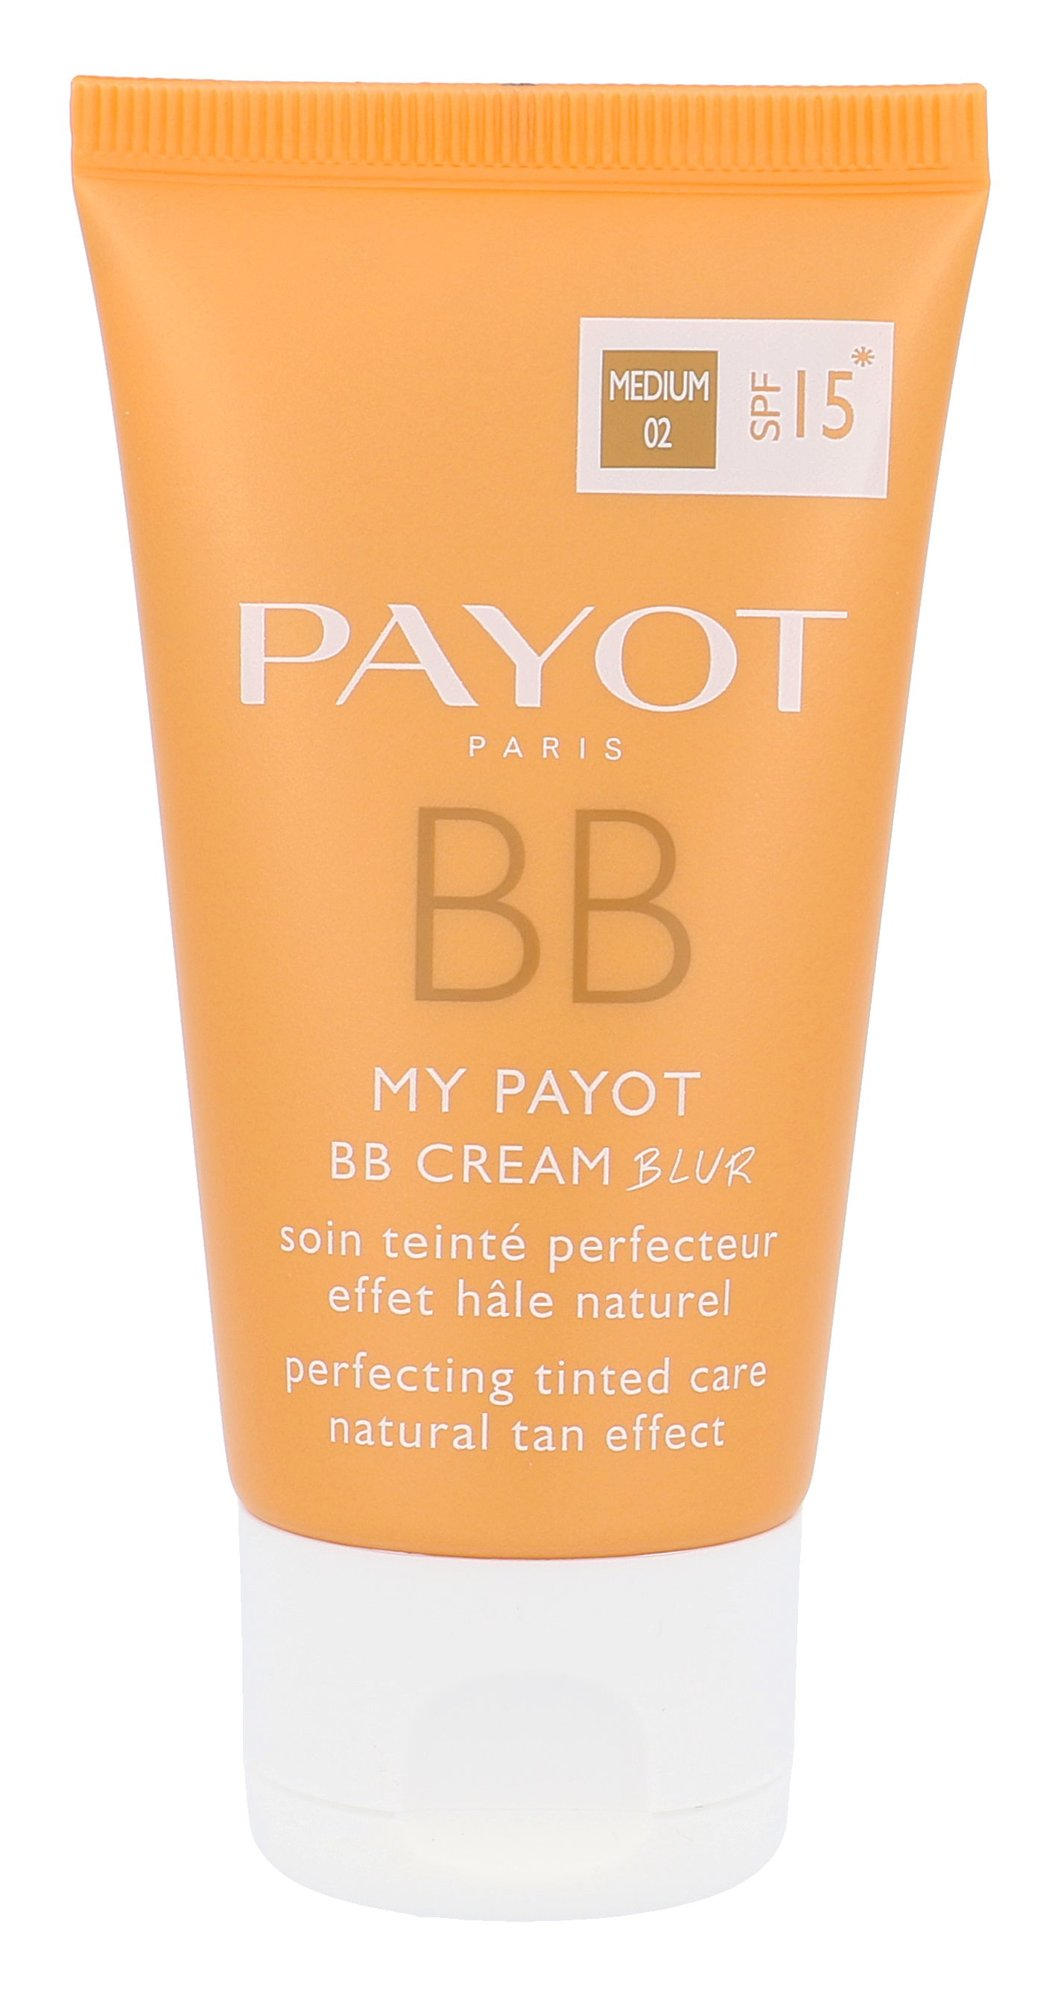 PAYOT My Payot Cosmetic 50ml 02 Medium